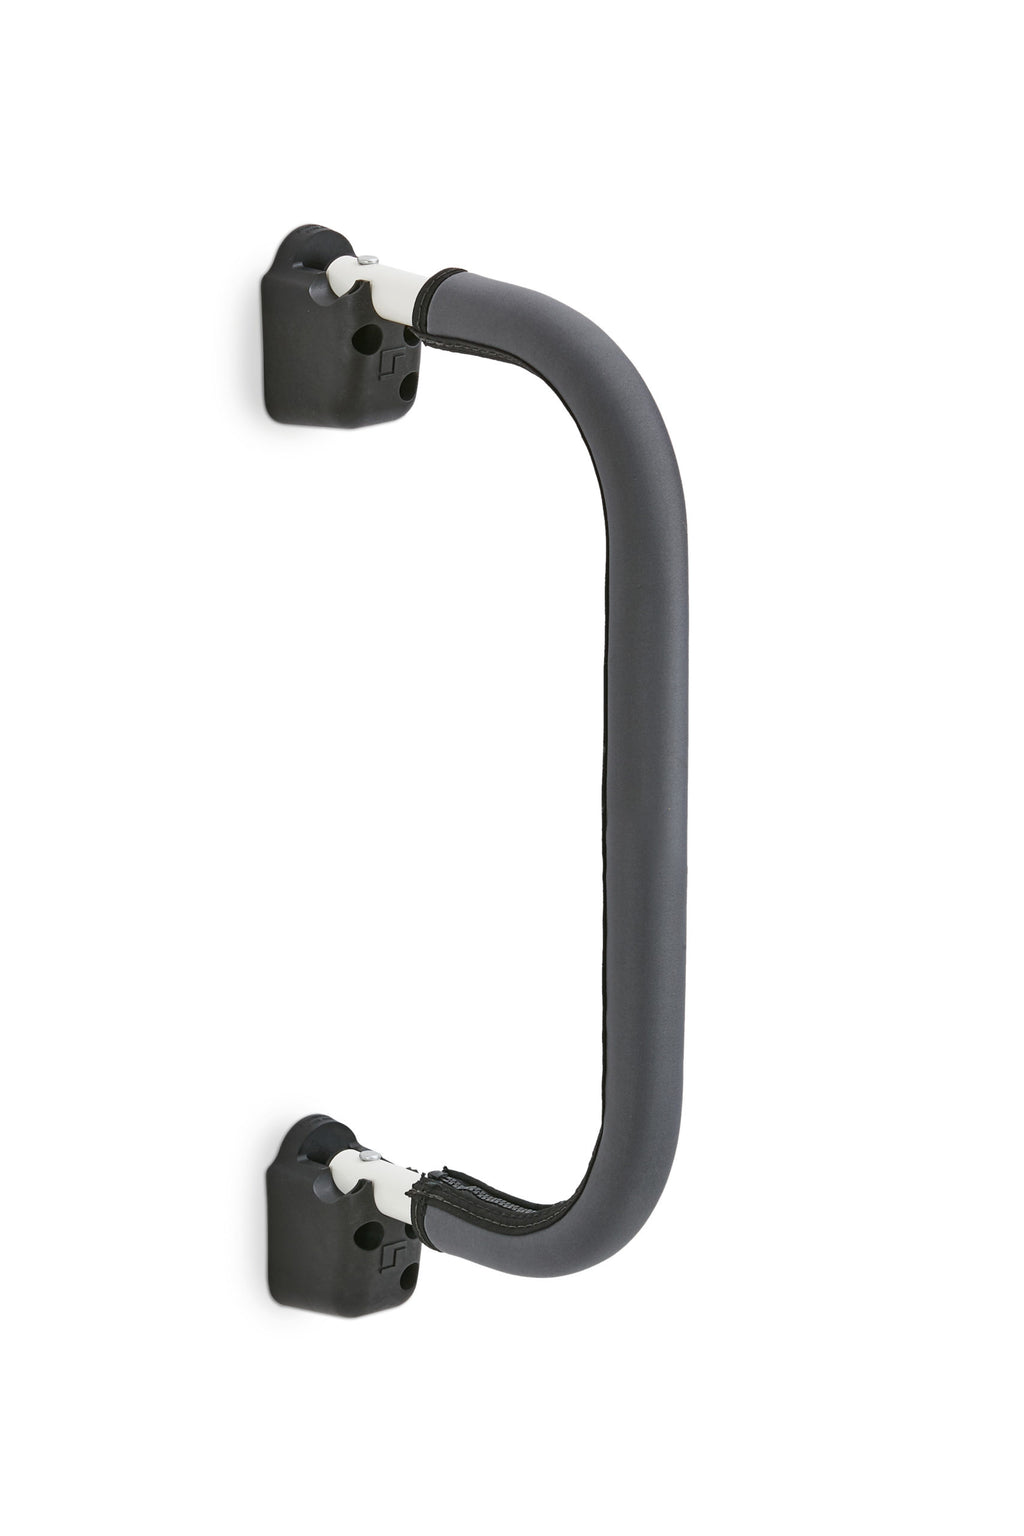 "Zip Grip Hand Rail Grip - Charcoal 22"" - AM-ZIP22C"